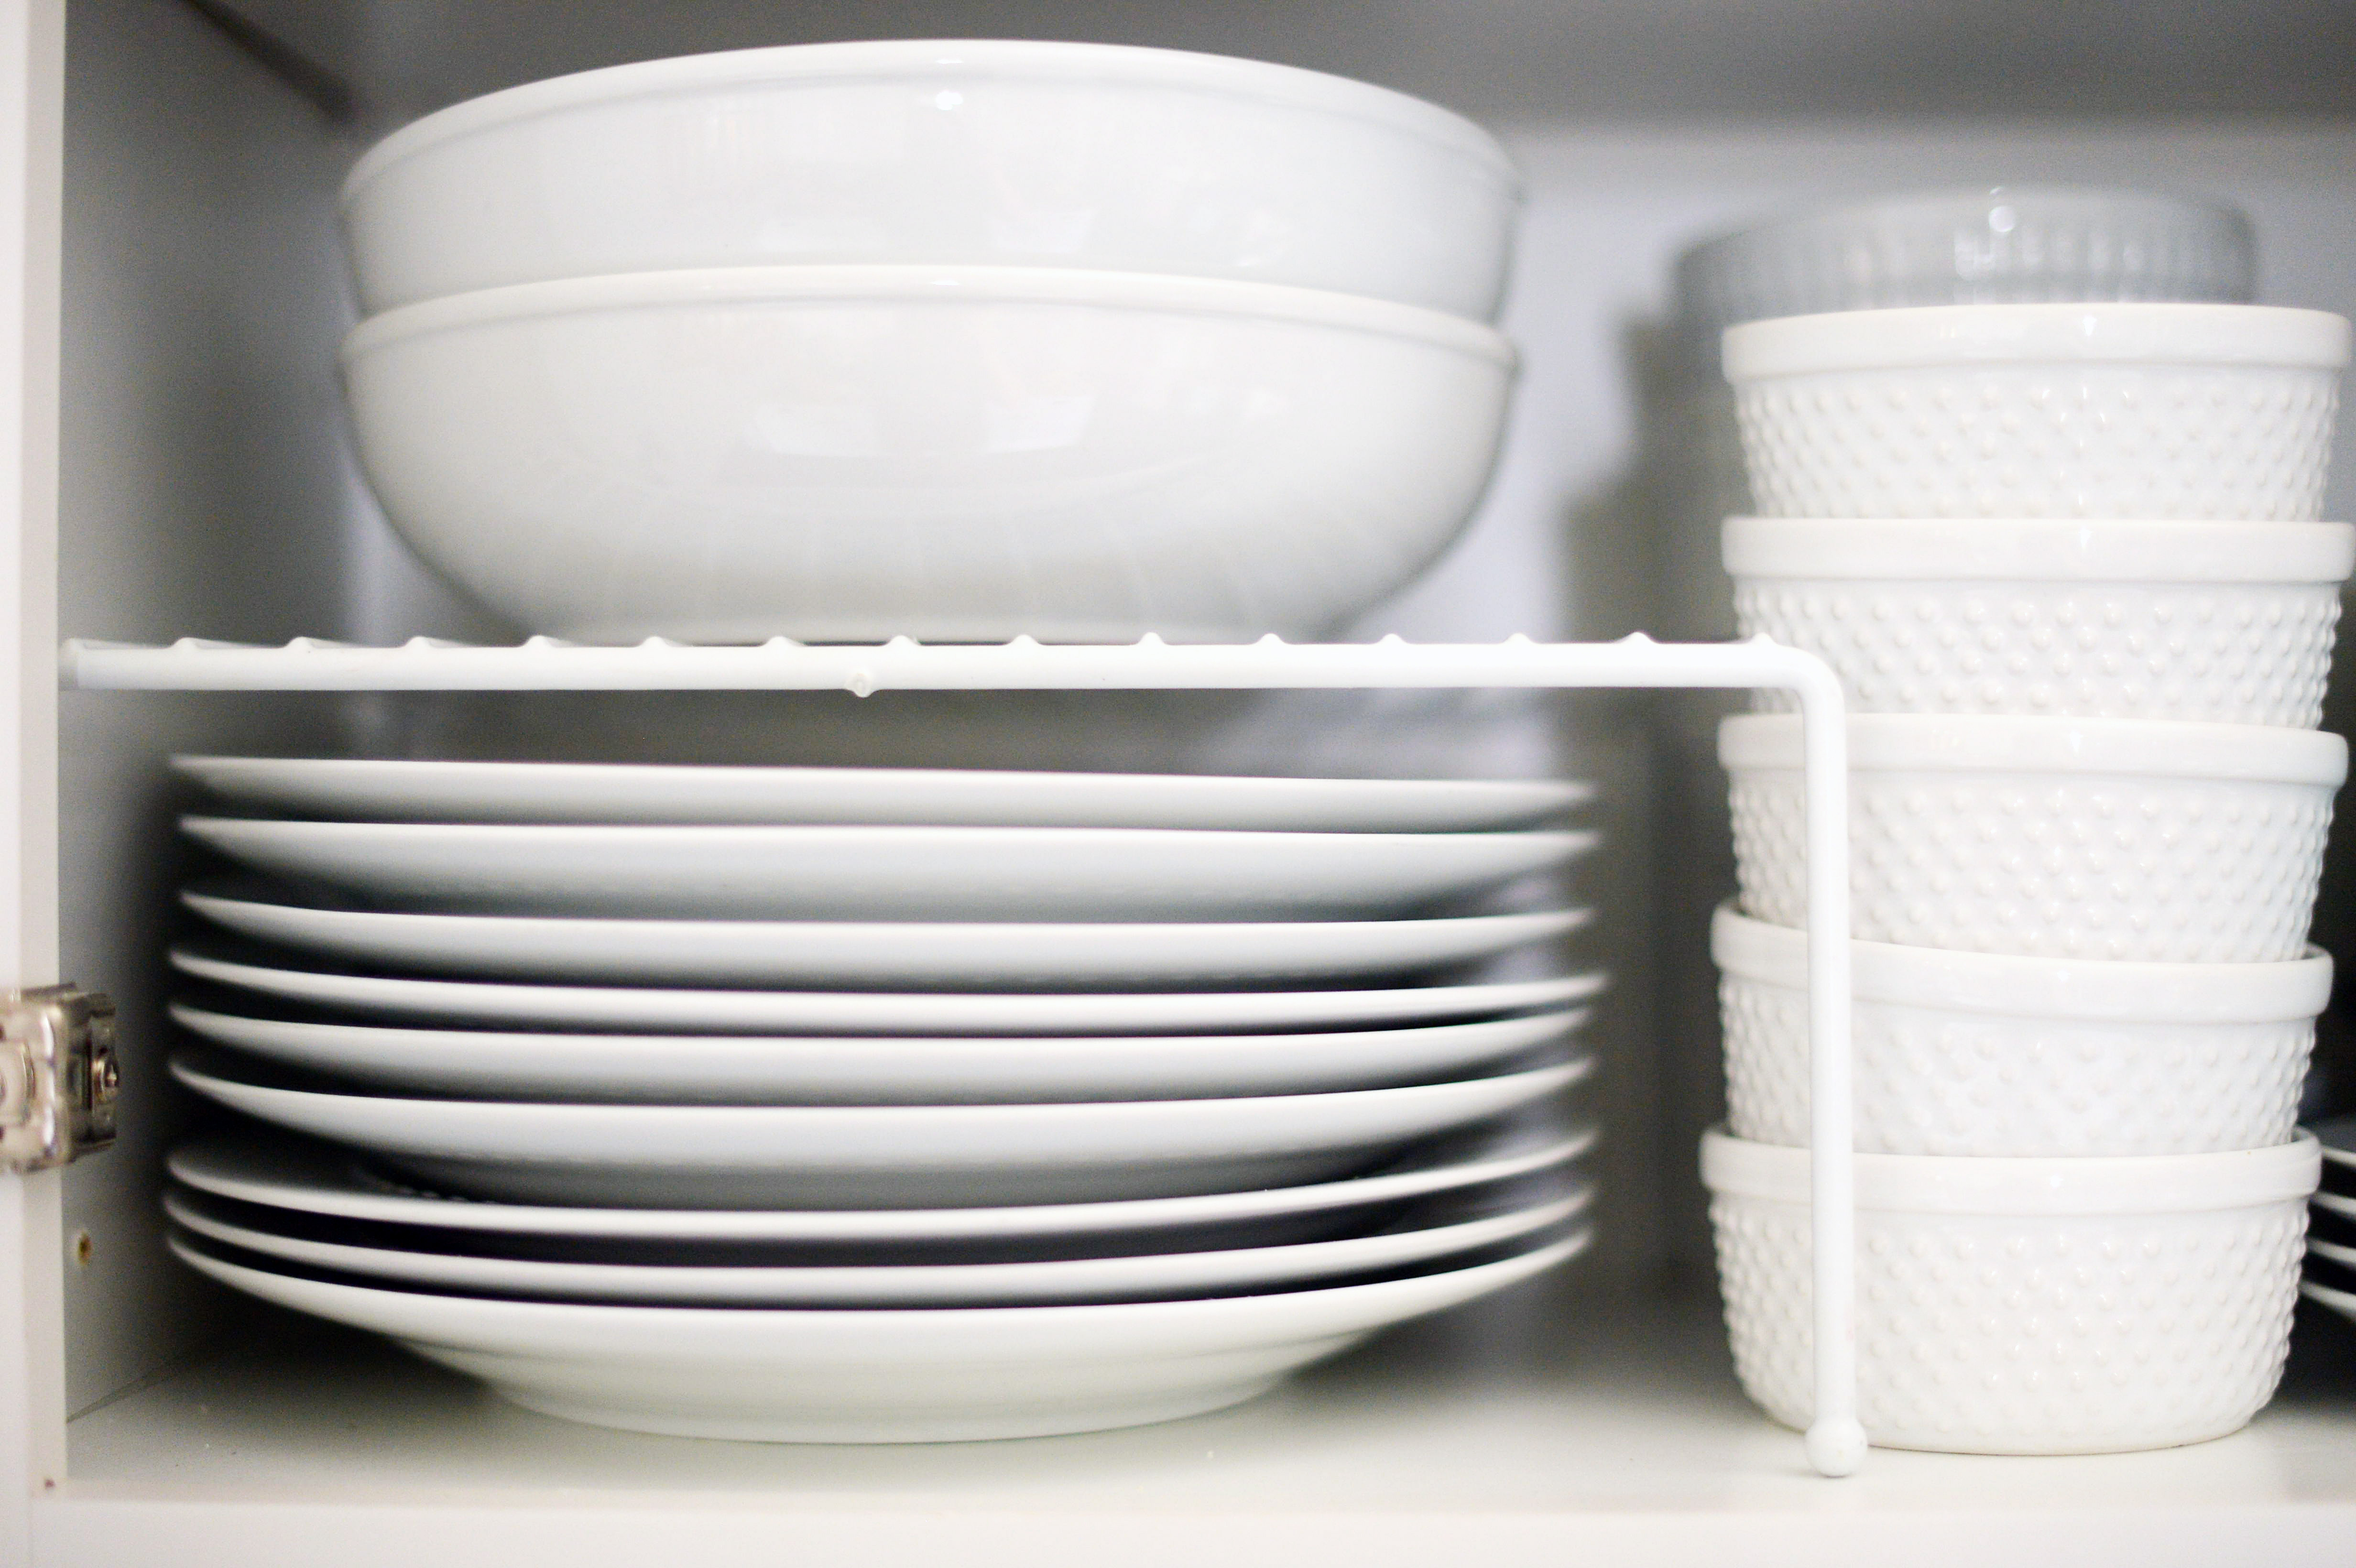 Garage garage organization via a bowl full of lemons the white bins - Food Storage Containers Toss Your Old Mismatched Plastic Bowls And Lids And Invest In Quality And Healthier Glass Food Containers